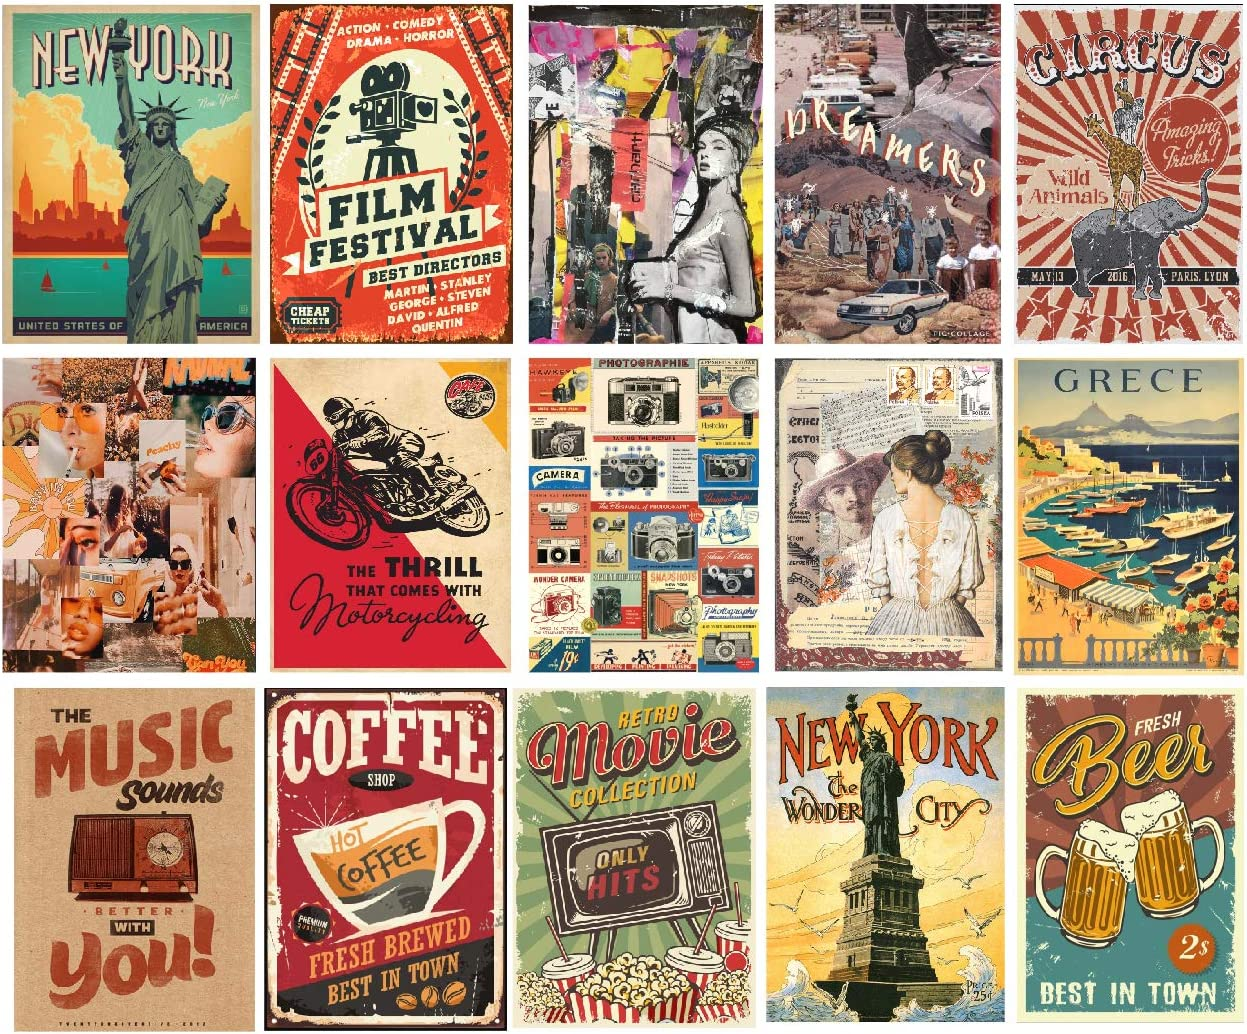 """H2 Studio Retro Stickers, Retro Postcards, Posters, Vintage Stickers, Classic Movie Posters, Easy to Install for Decorating Laptop, 90s Room Decor, Wall Art Decor, Garage, Coffee Shop 3""""x5"""", Pack 16"""